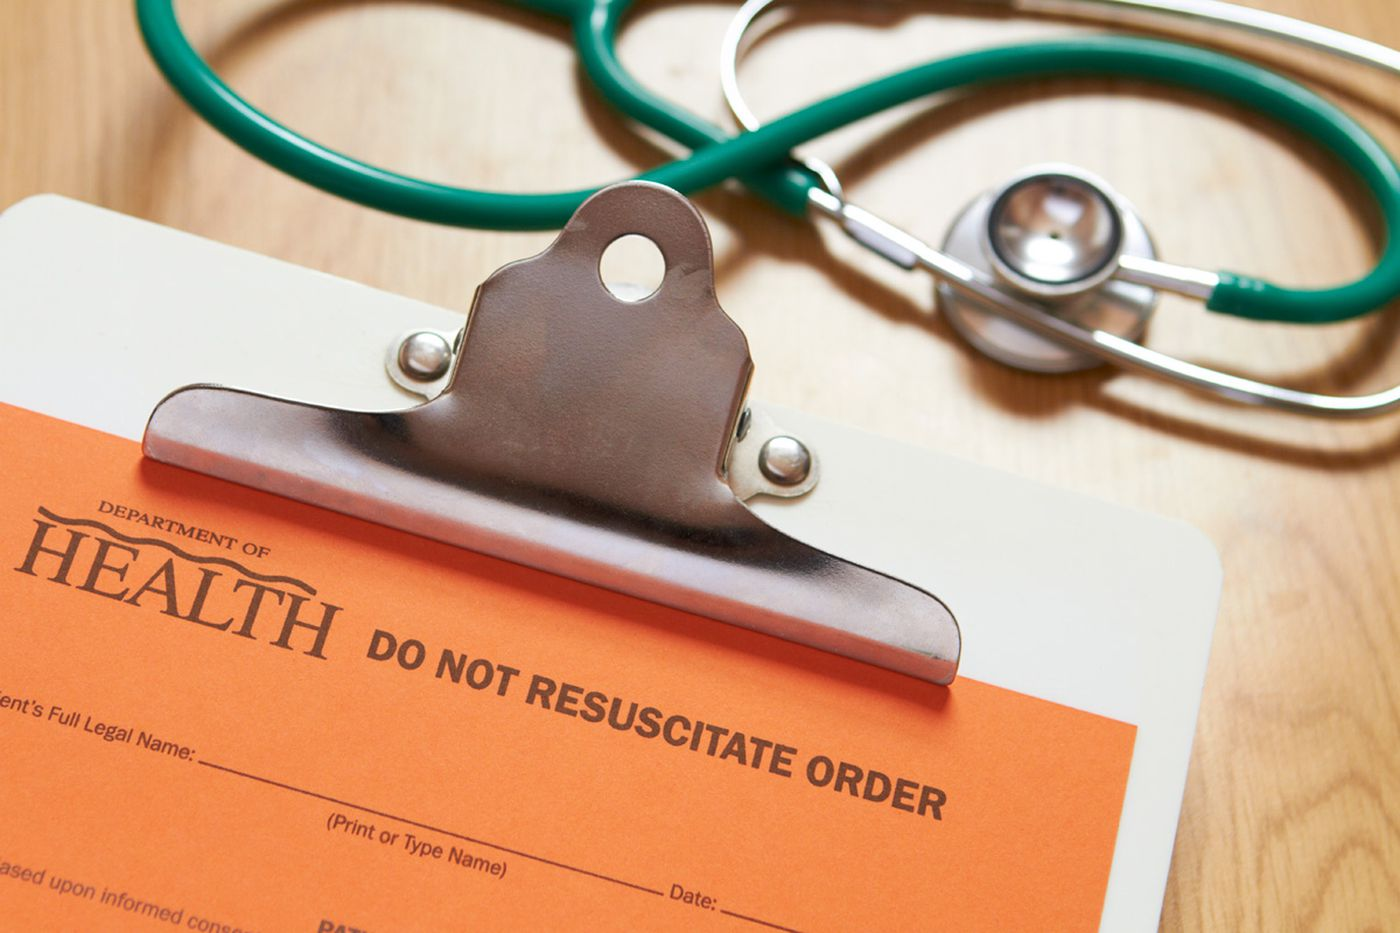 Doctors are confused by living wills, study finds